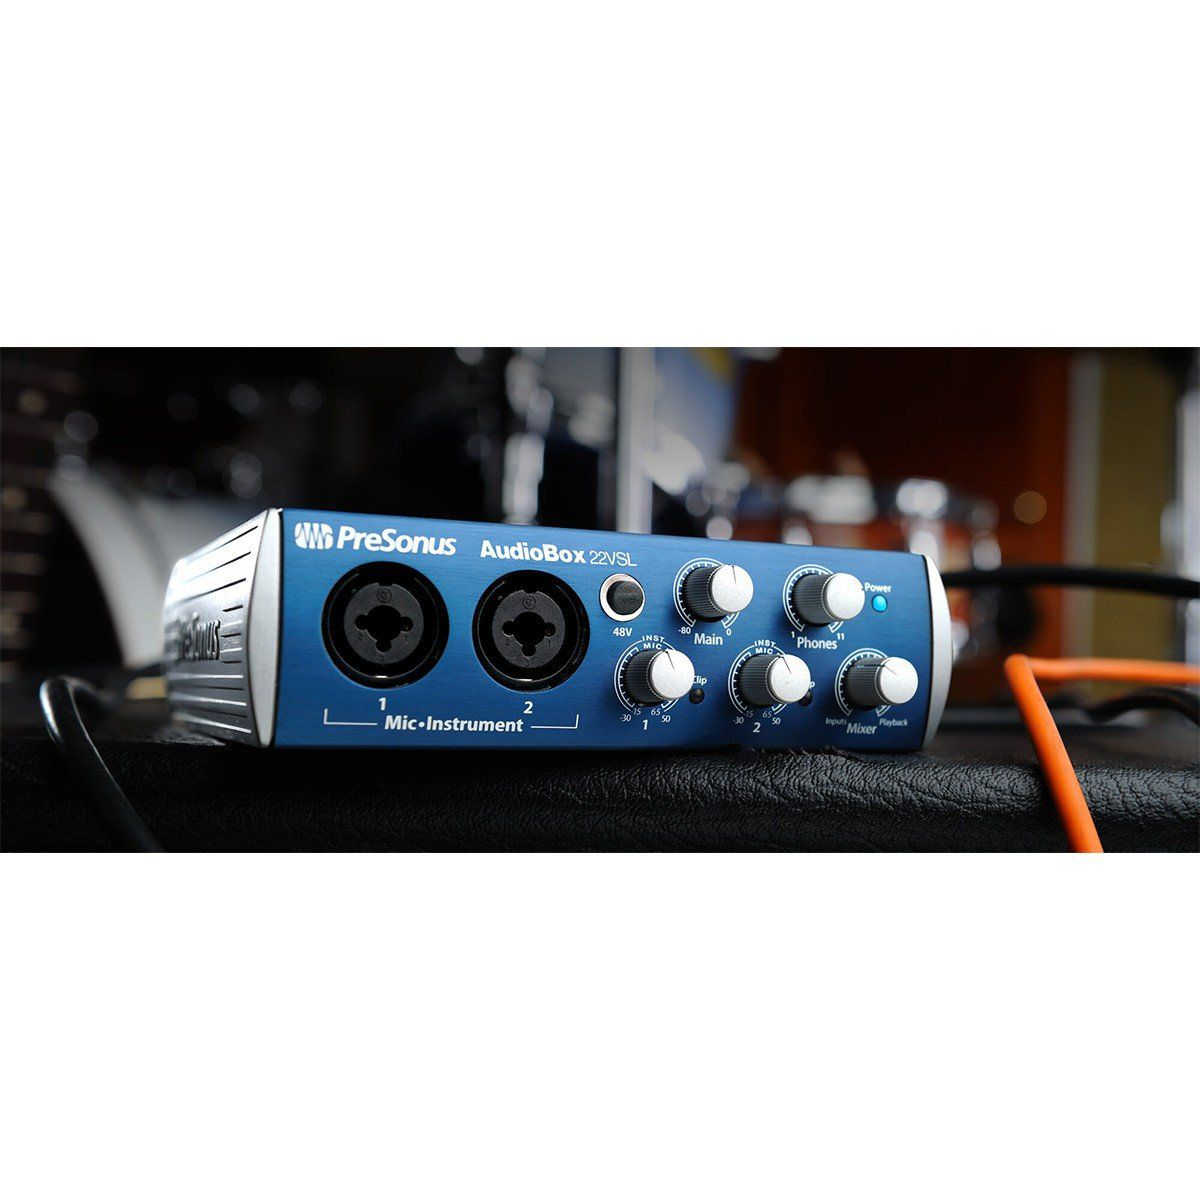 Presonus AudioBox 22VSL Interface de Audio Audio Box 22 VSL 2x2 Usb 24-Bit 96-Khz